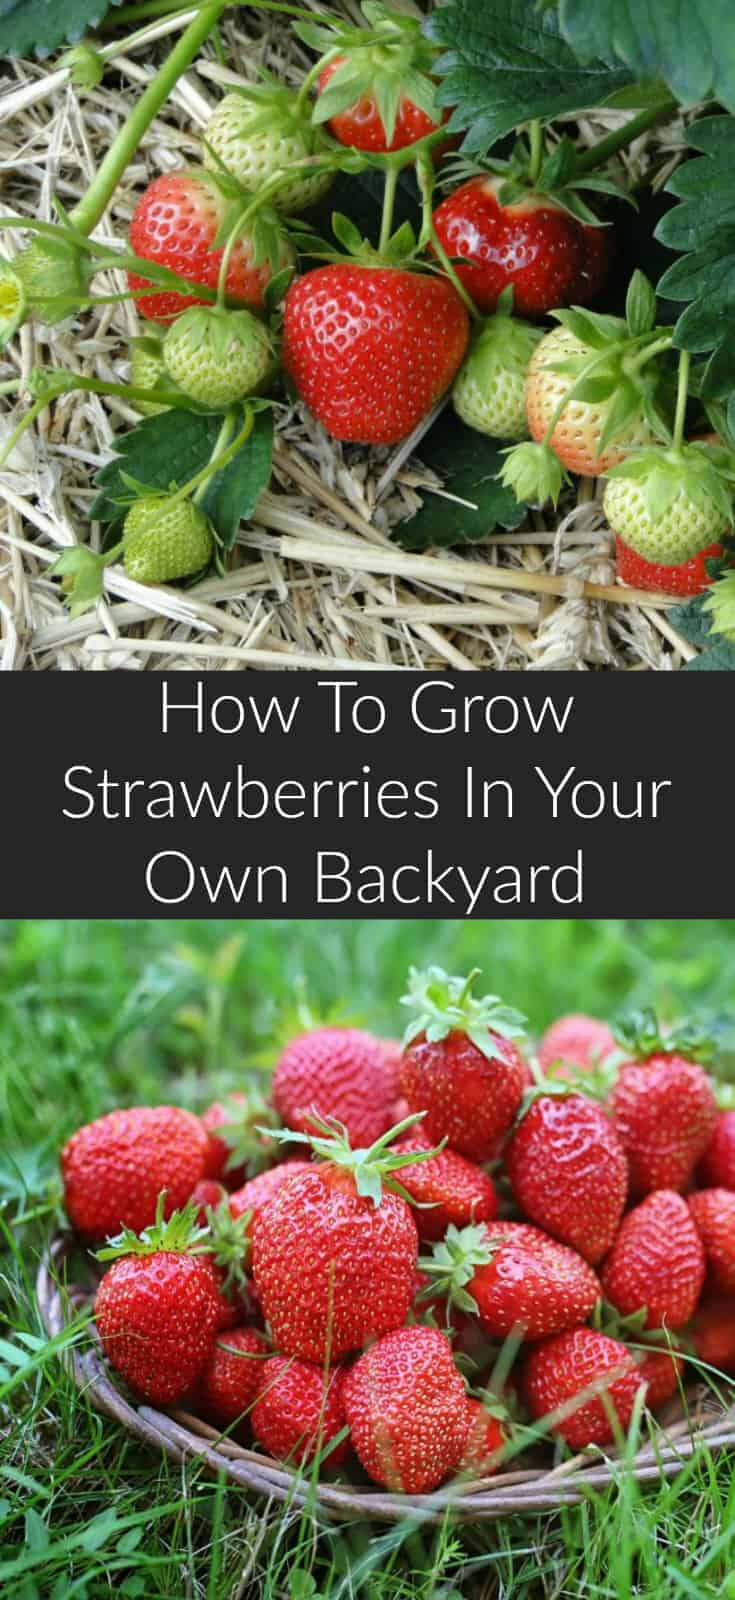 Learn how to grow strawberries at home with minimal effort. An easy to grow perennial ideal for every summer garden. Kids love eating the ripe fruit, and strawberries can be used in many healthy recipes. #gardeningtips #vegetablegardening #homesteading #urbangardening